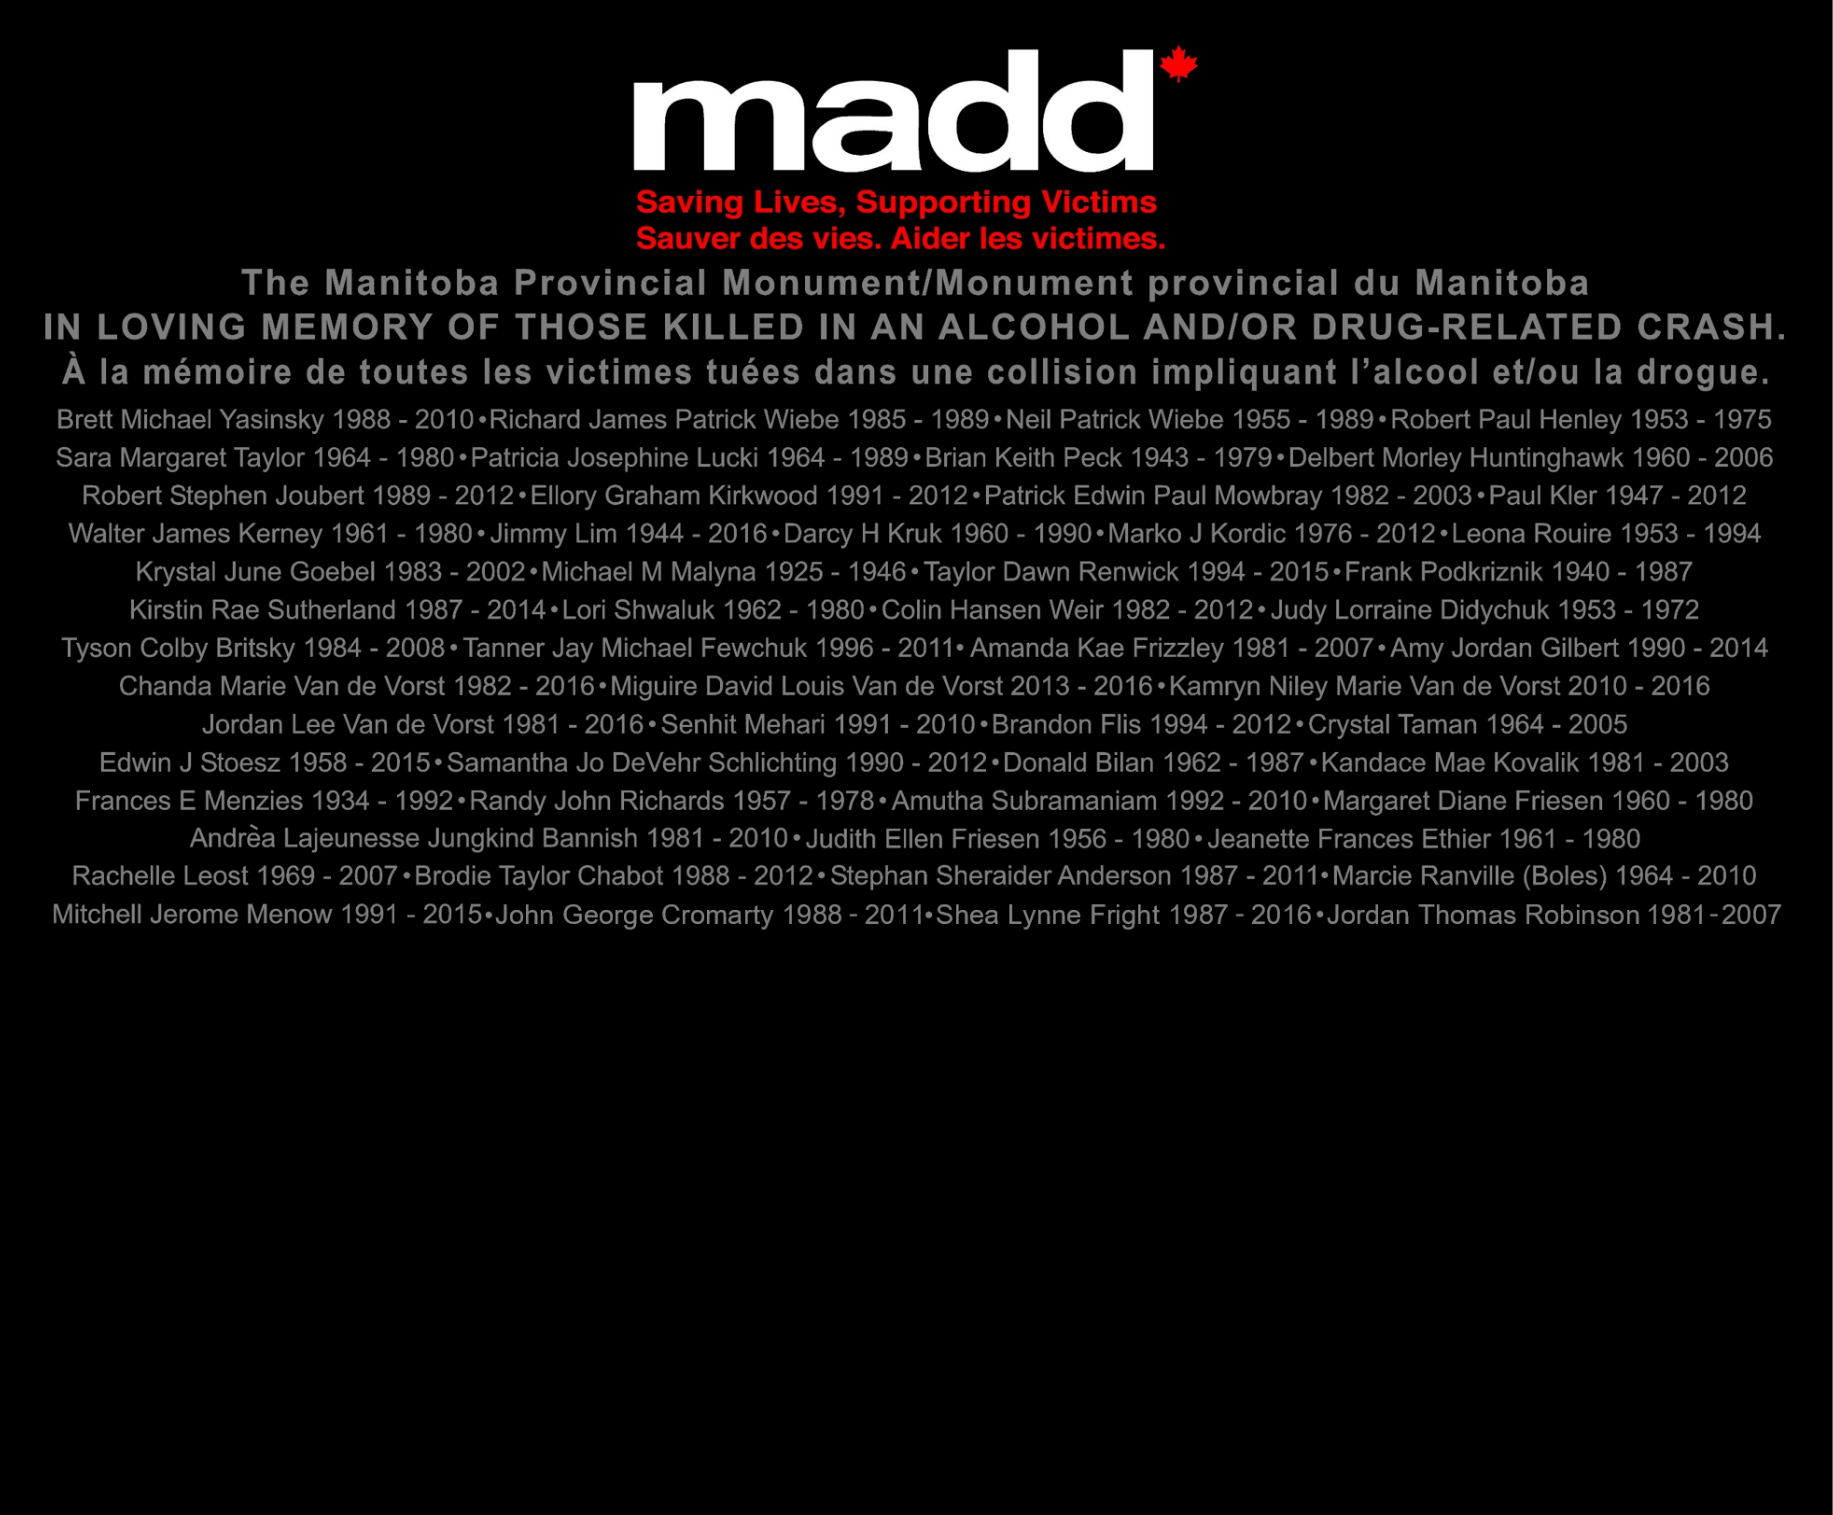 MADD August 28 2016